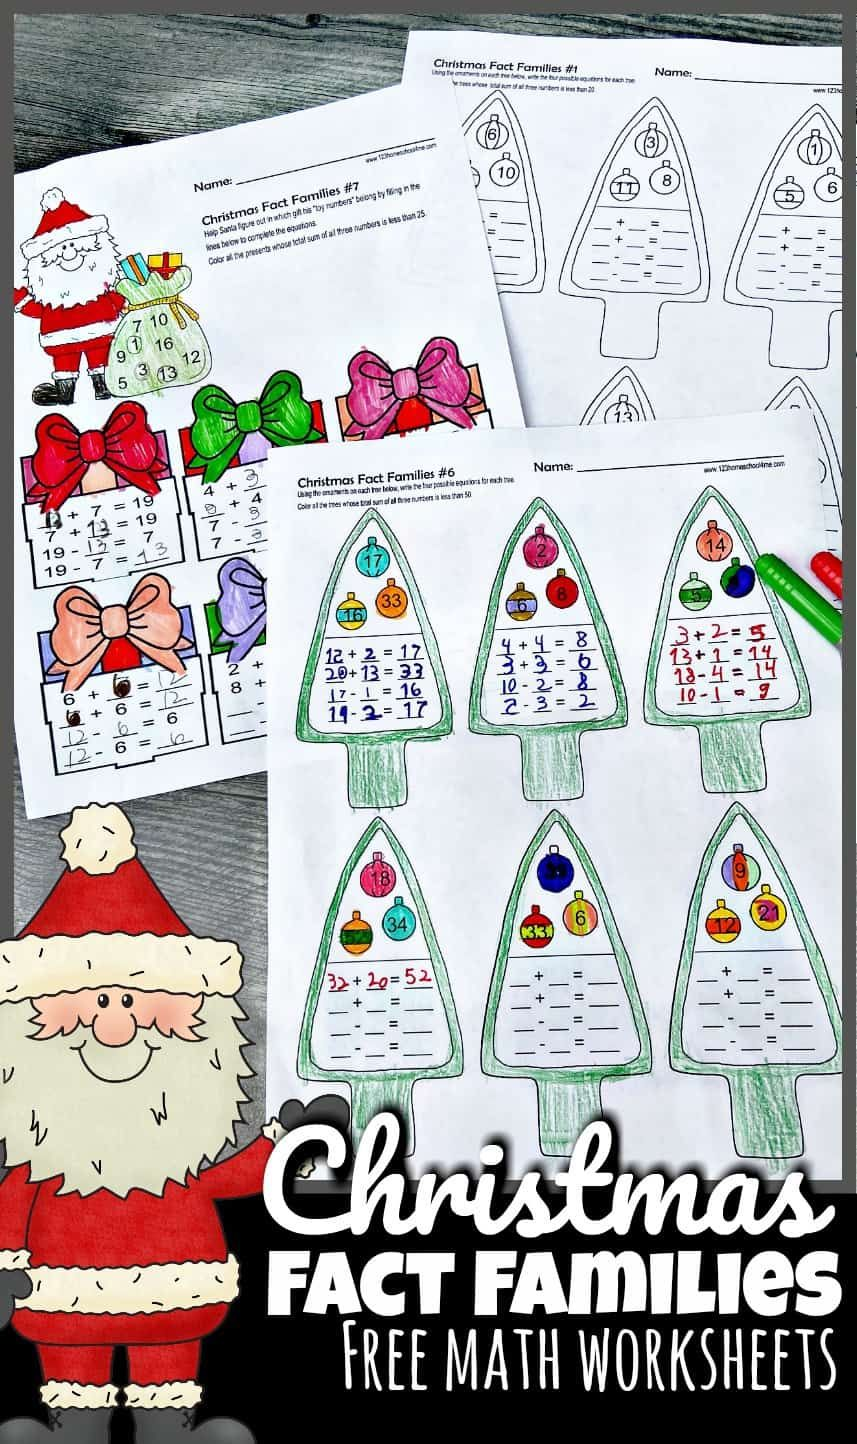 Free Christmas Fact Families Addition And Subtraction Math Worksheets Christmas Trivia Christmas Math Worksheets Fact Families Free christmas addition and subtraction